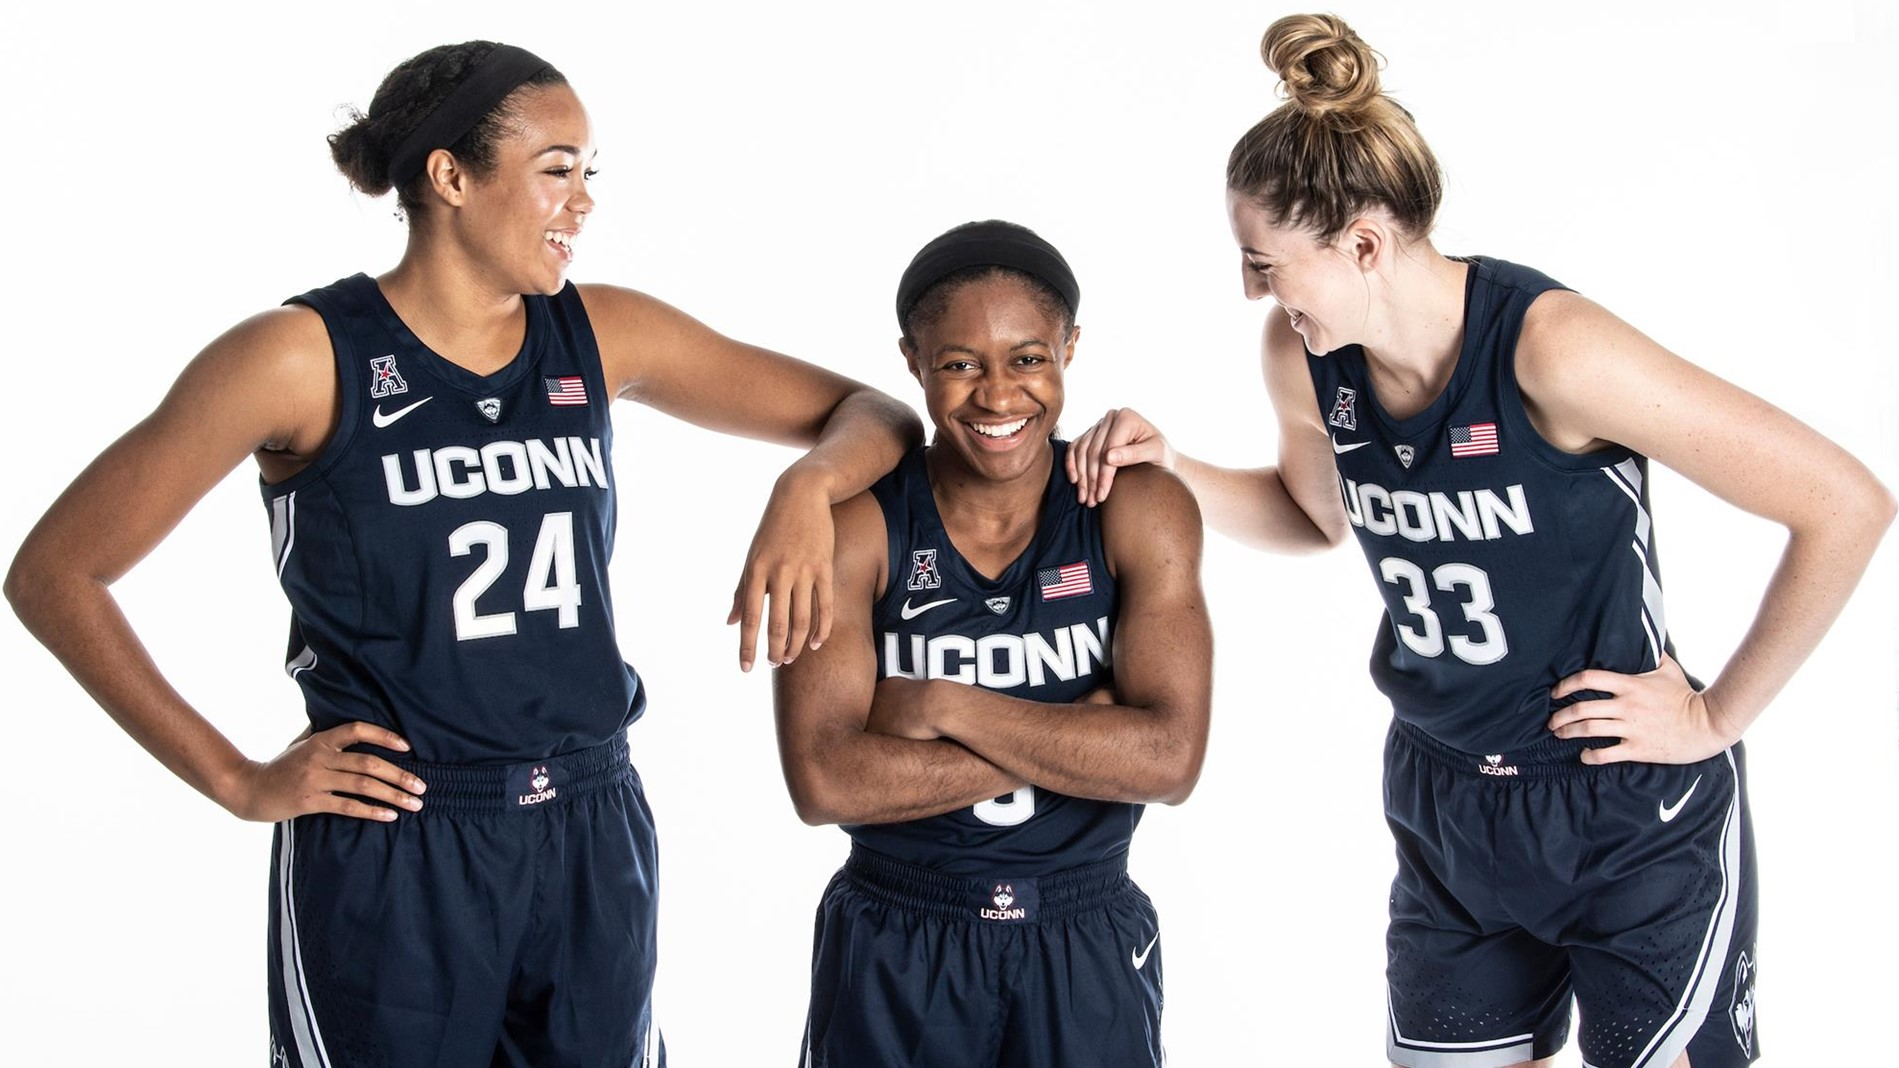 reputable site 5cbd1 d4a96 UConn Trio Named to Wooden Midseason Top 25 - University of ...